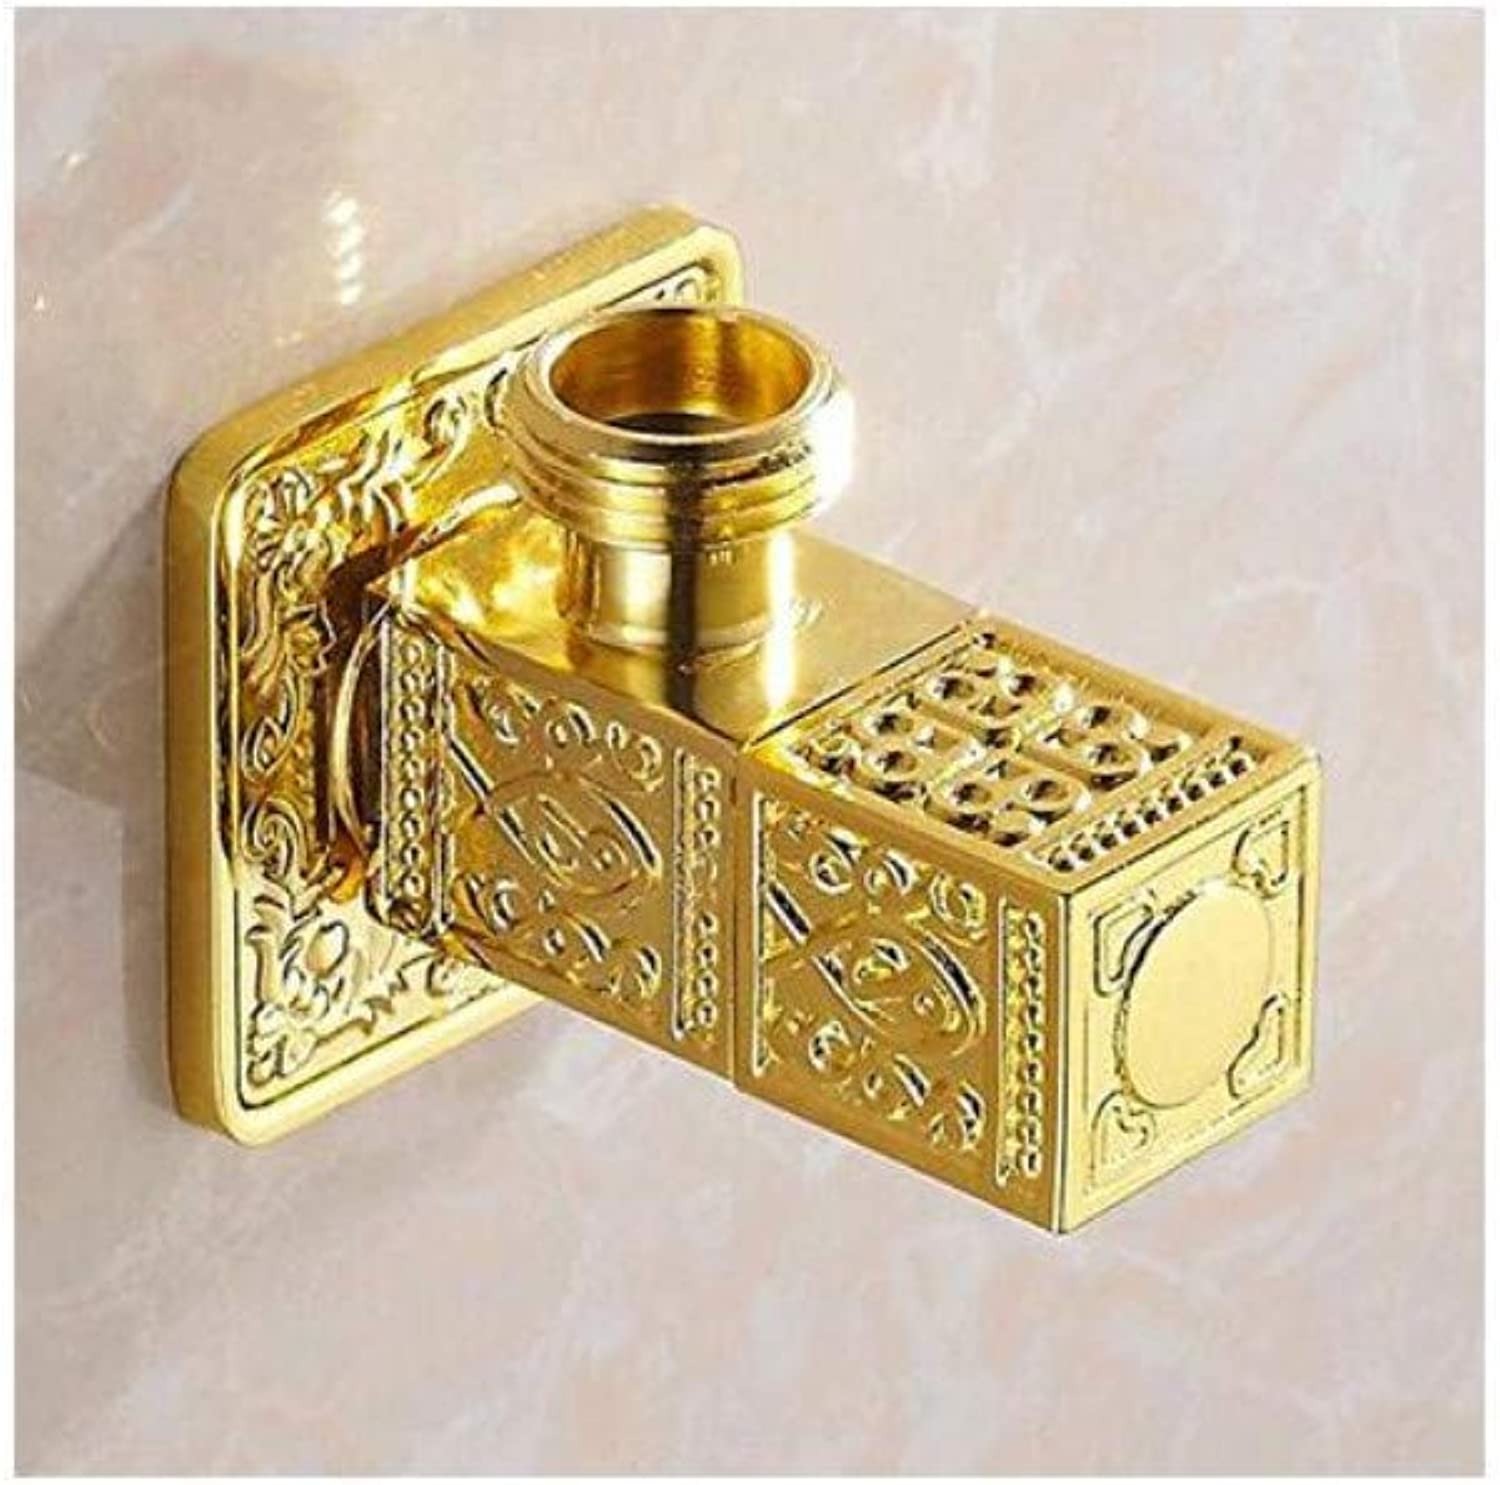 Taps Kitchen Sinkpressure Angle Valve Faucet Toilet Water Heater Octagonal Valve Hot and Cold Angle Valve Heat Sink Constant Temperature